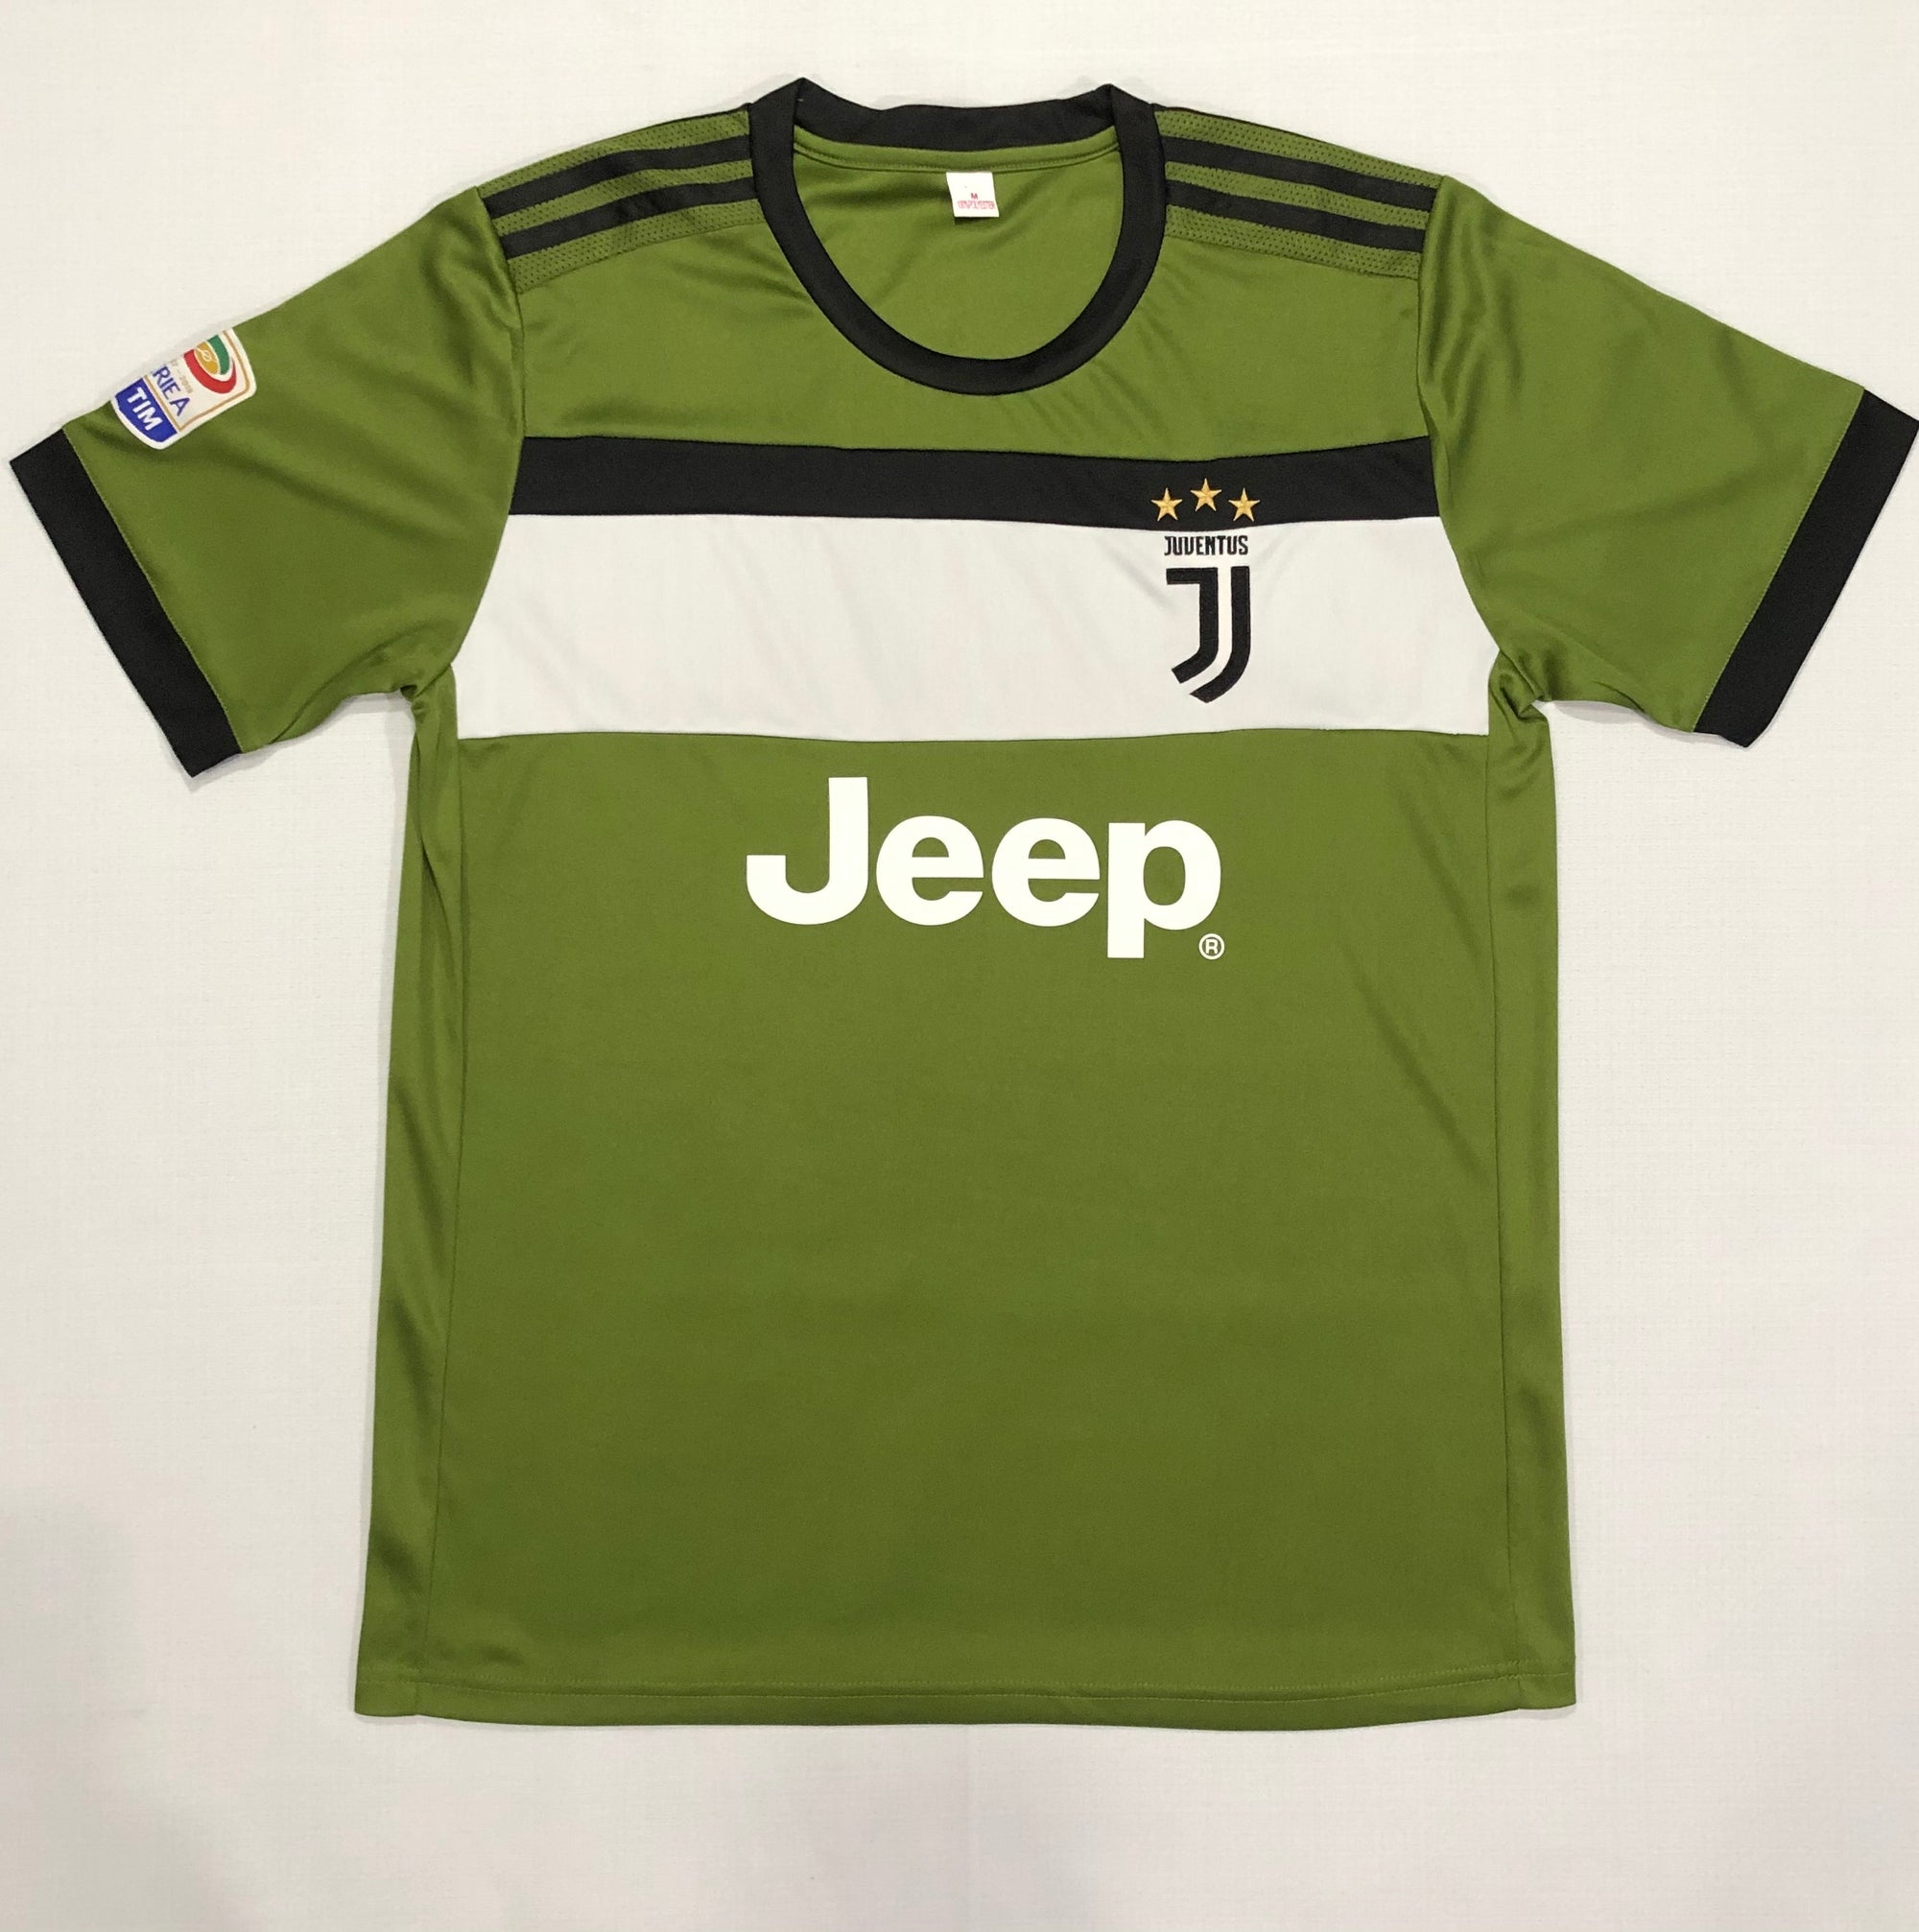 Juventus 3rd 2017/18 Adult Shirt ~ Replica Version